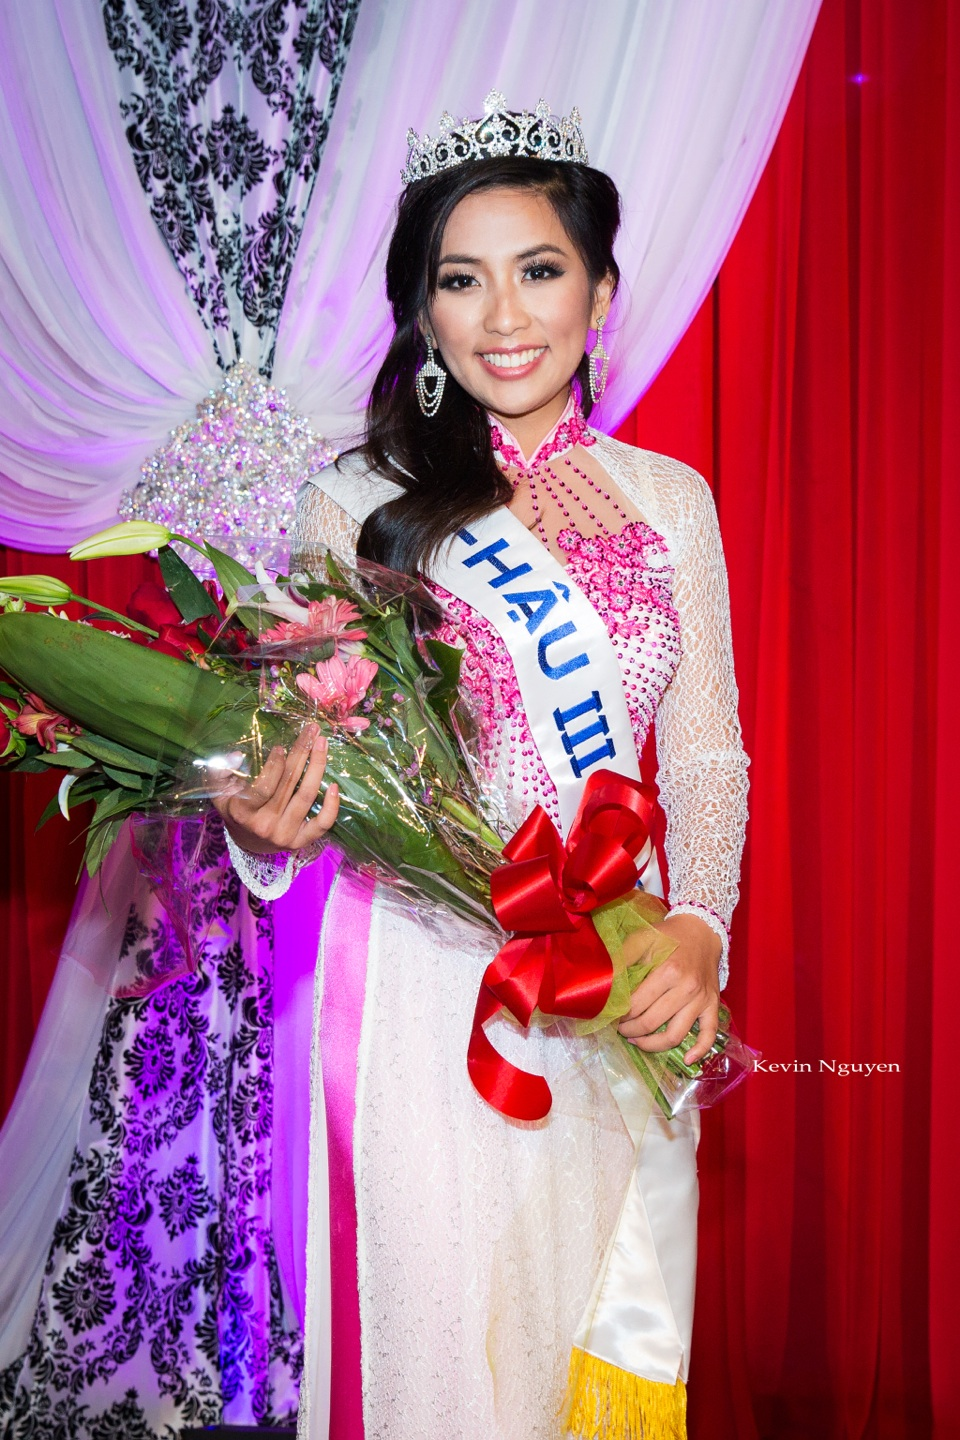 Pageant Day 2014 - Miss Vietnam of Northern California - San Jose, CA - Image 854